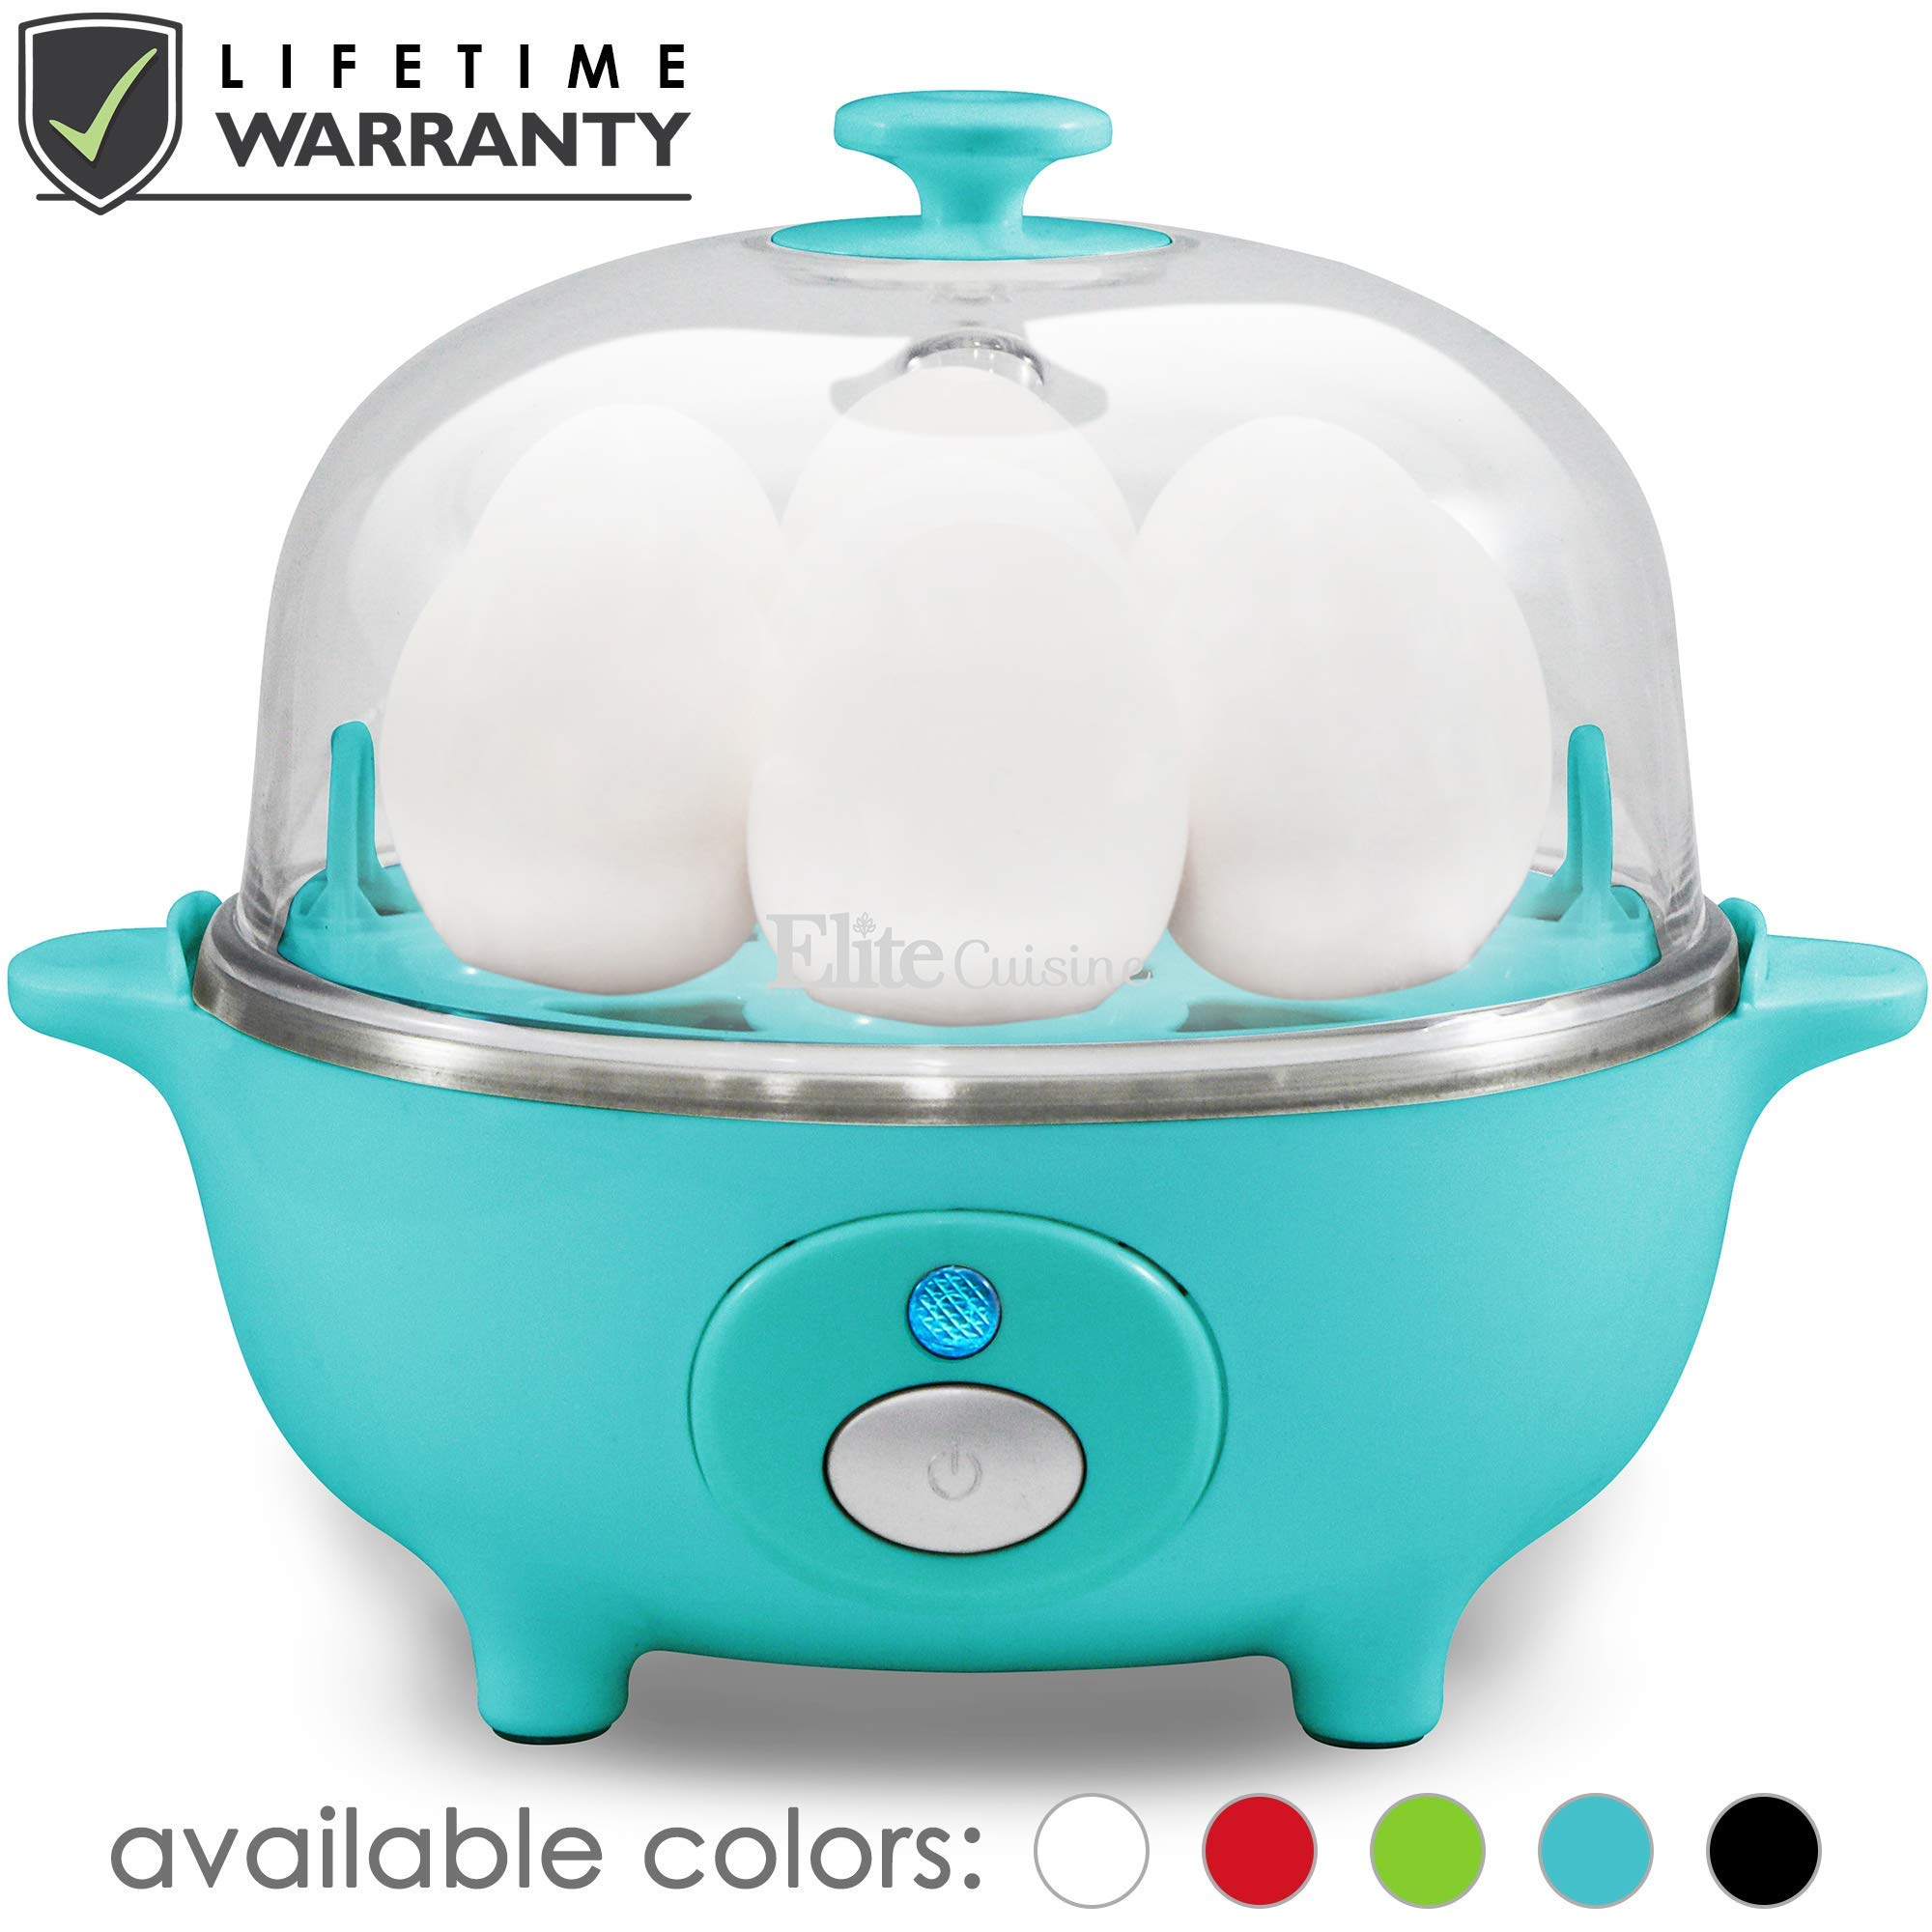 Maxi-Matic EGC-007T Easy Electric Egg Poacher, Omelet & Soft, Medium, Hard-Boiled Measuring Cup Included, 7 Capacity, Teal (Renewed) by Maxi-Matic